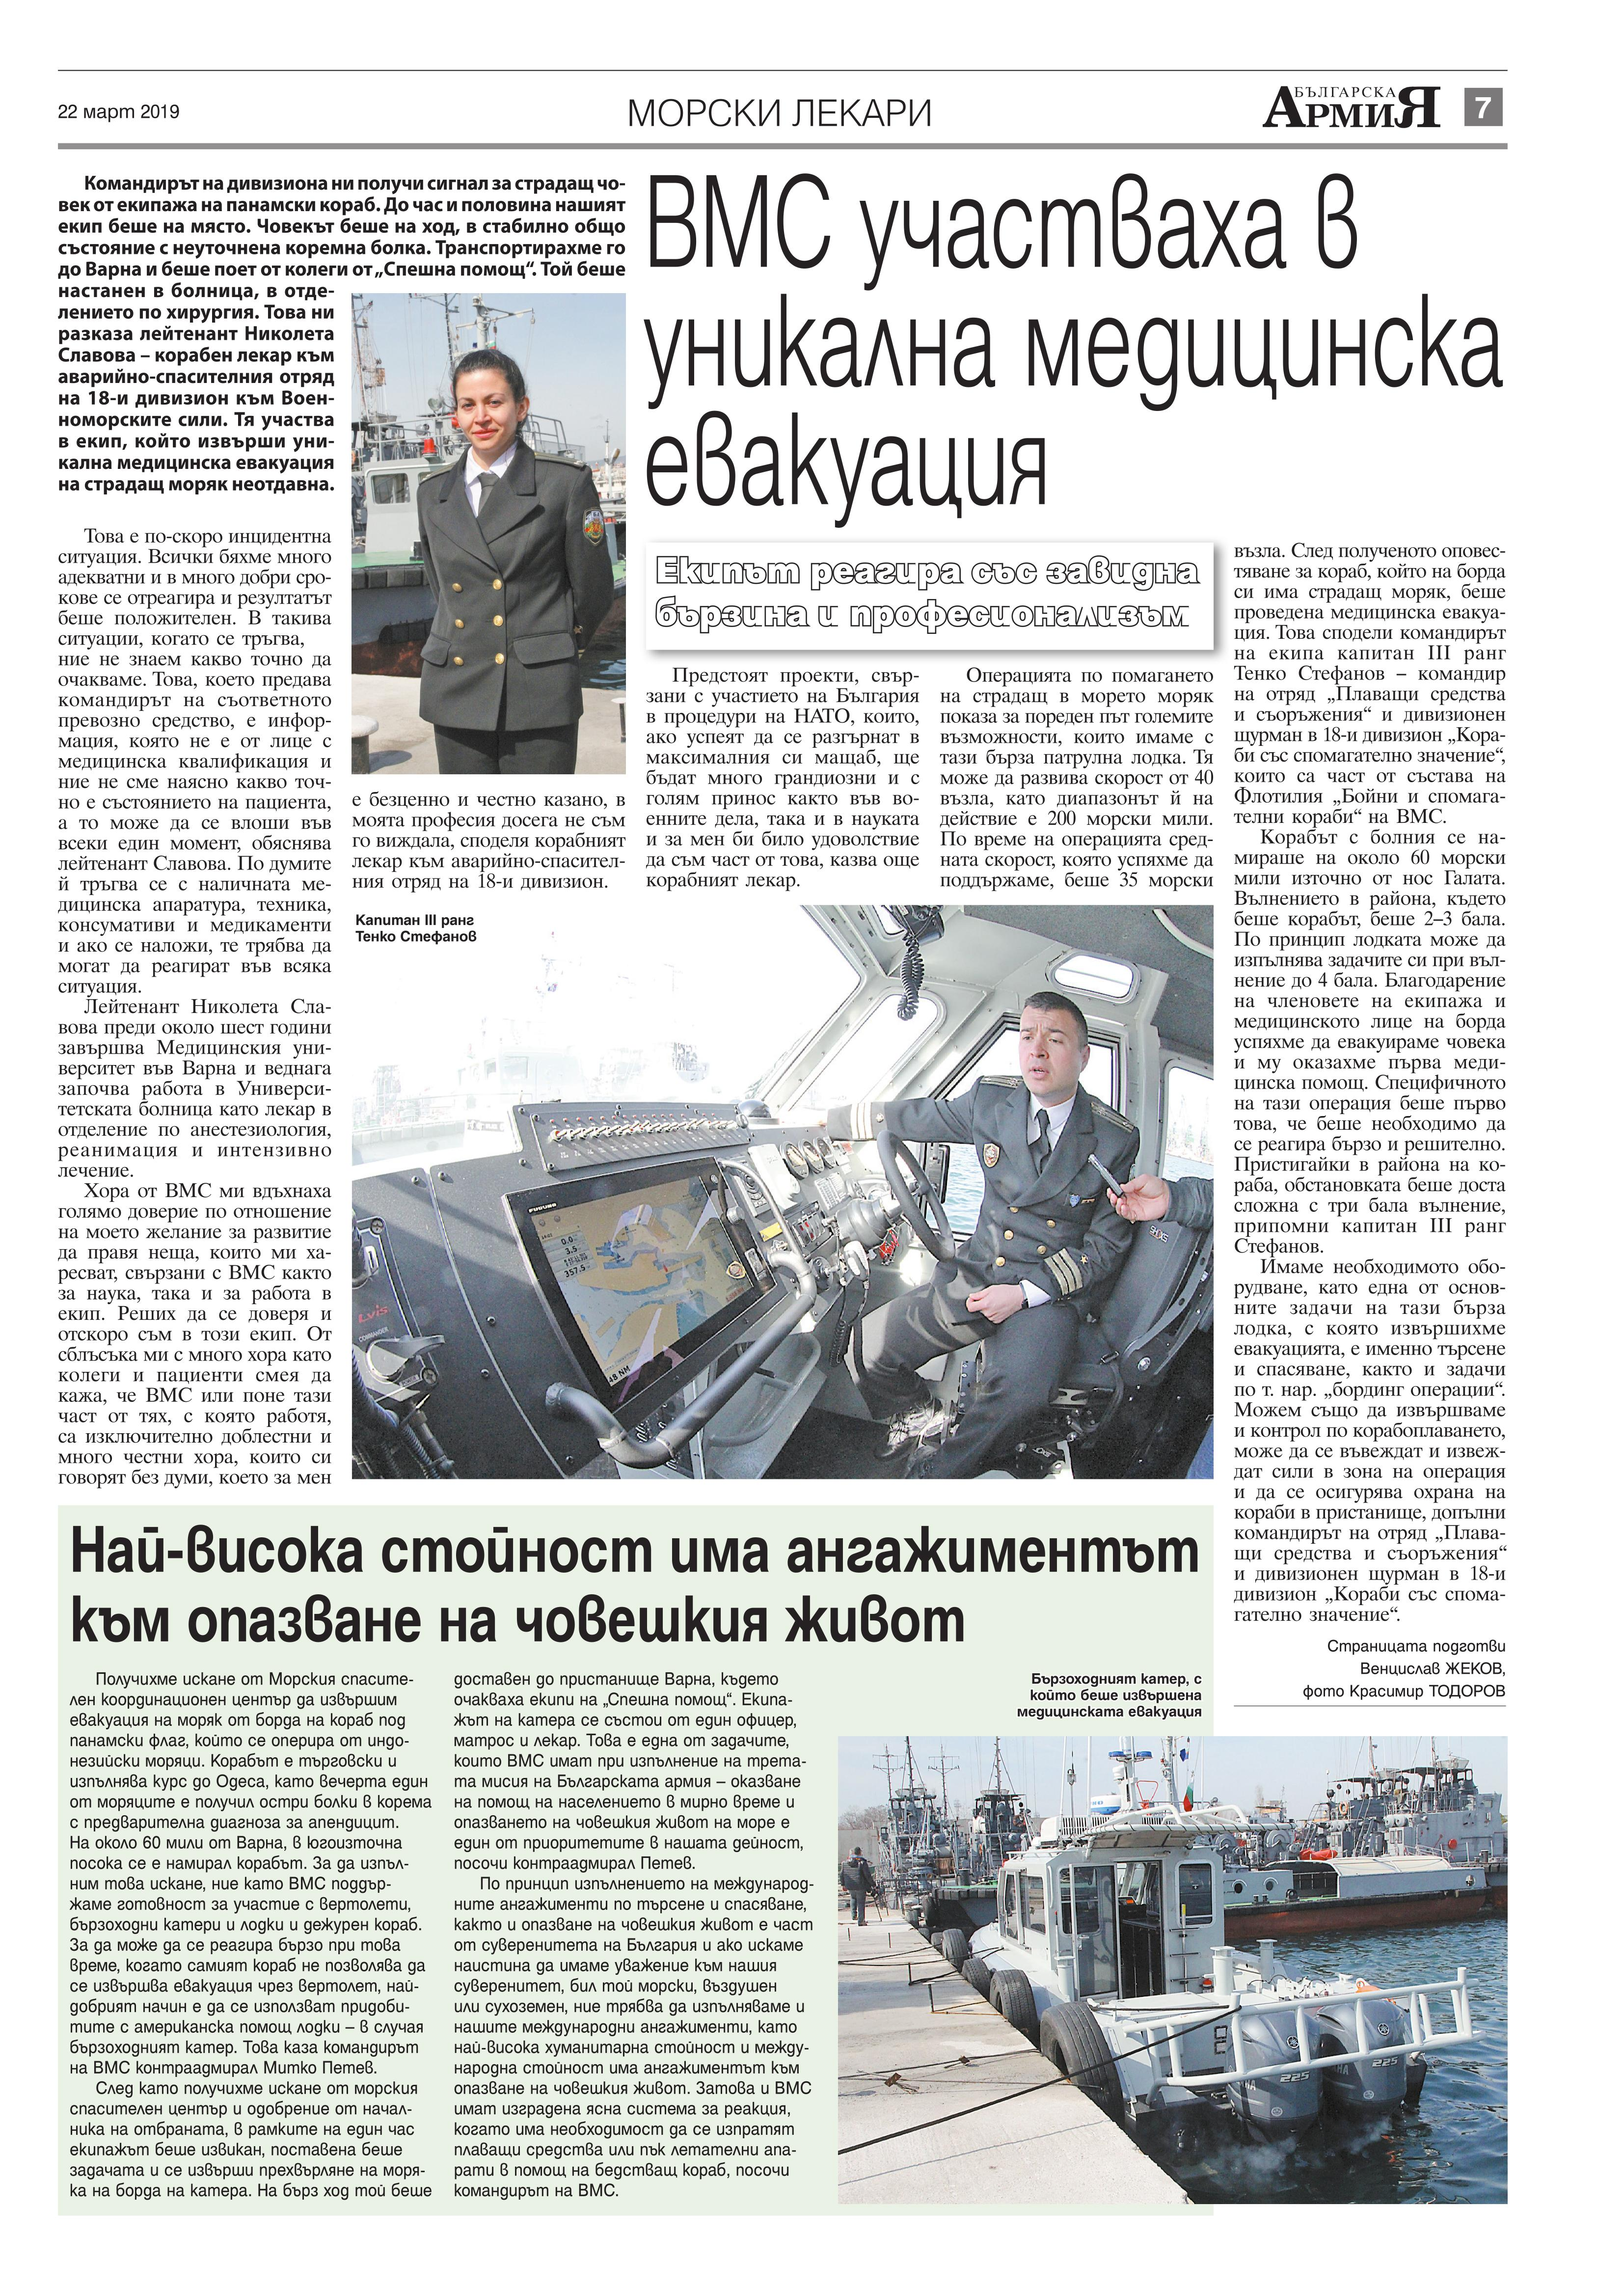 https://www.armymedia.bg/wp-content/uploads/2015/06/07.page1_-85.jpg